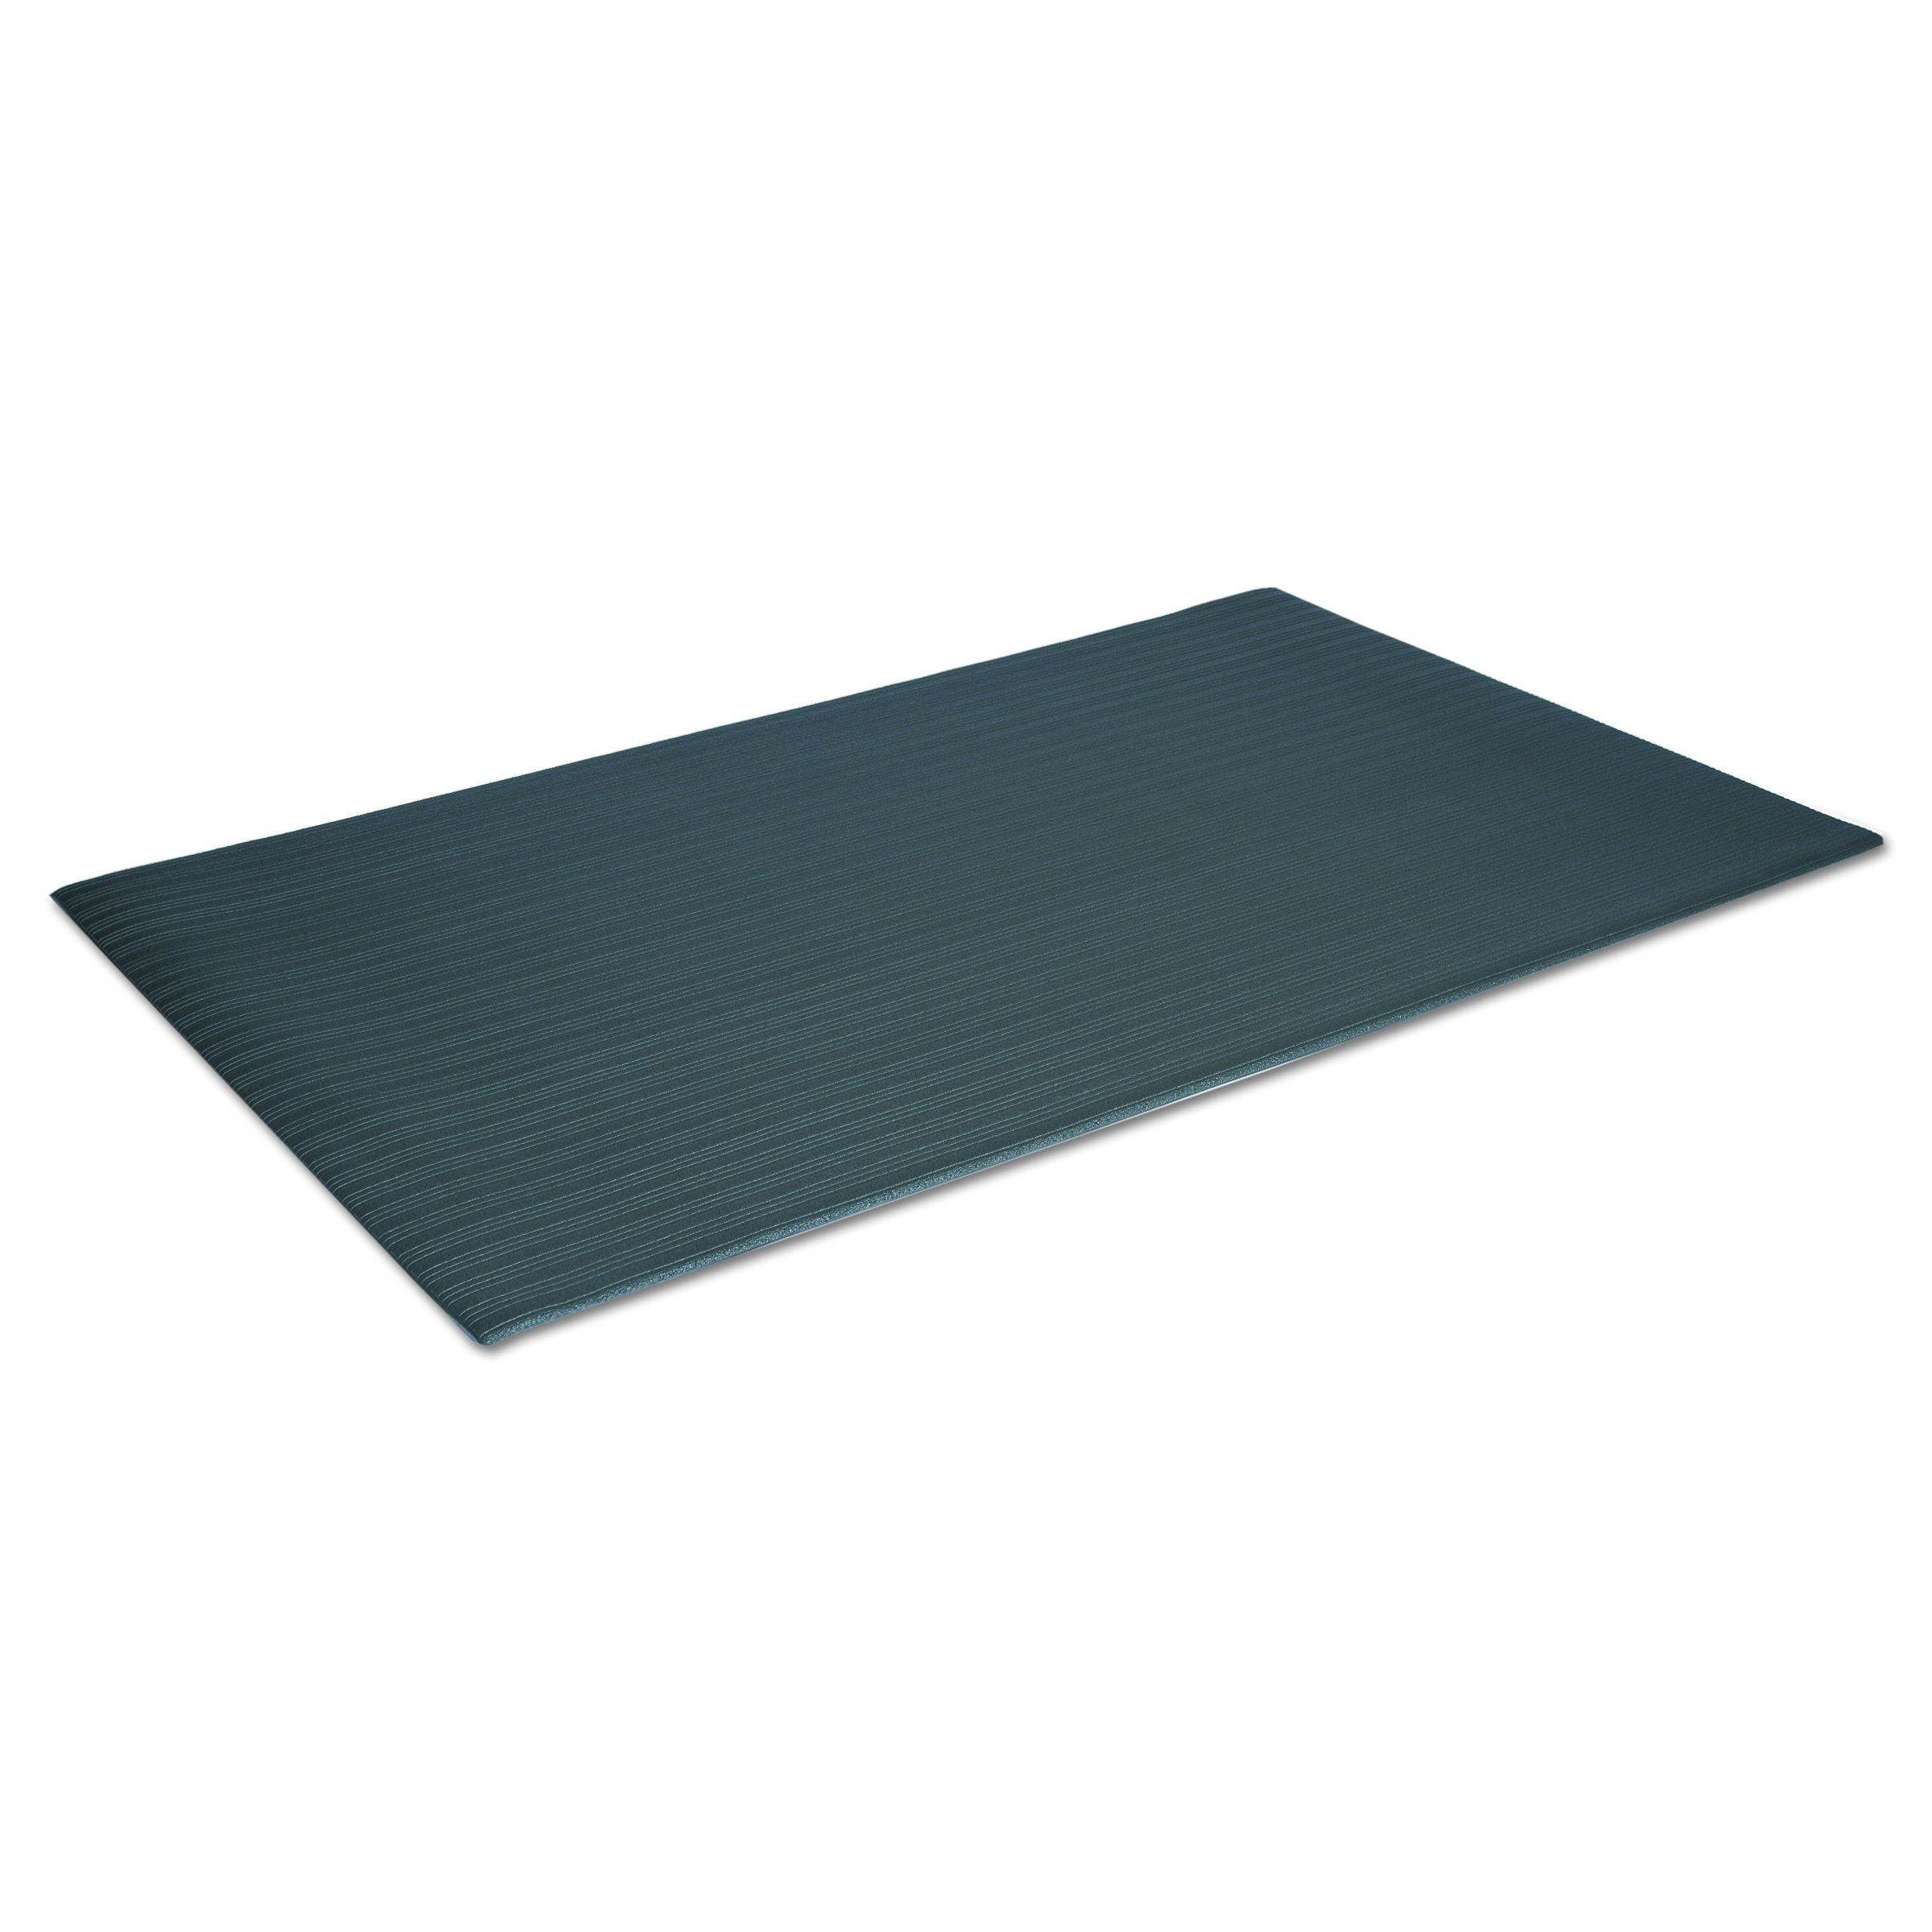 Crown FL2436BK Ribbed Vinyl Anti-Fatigue Mat, 24 x 36, Black